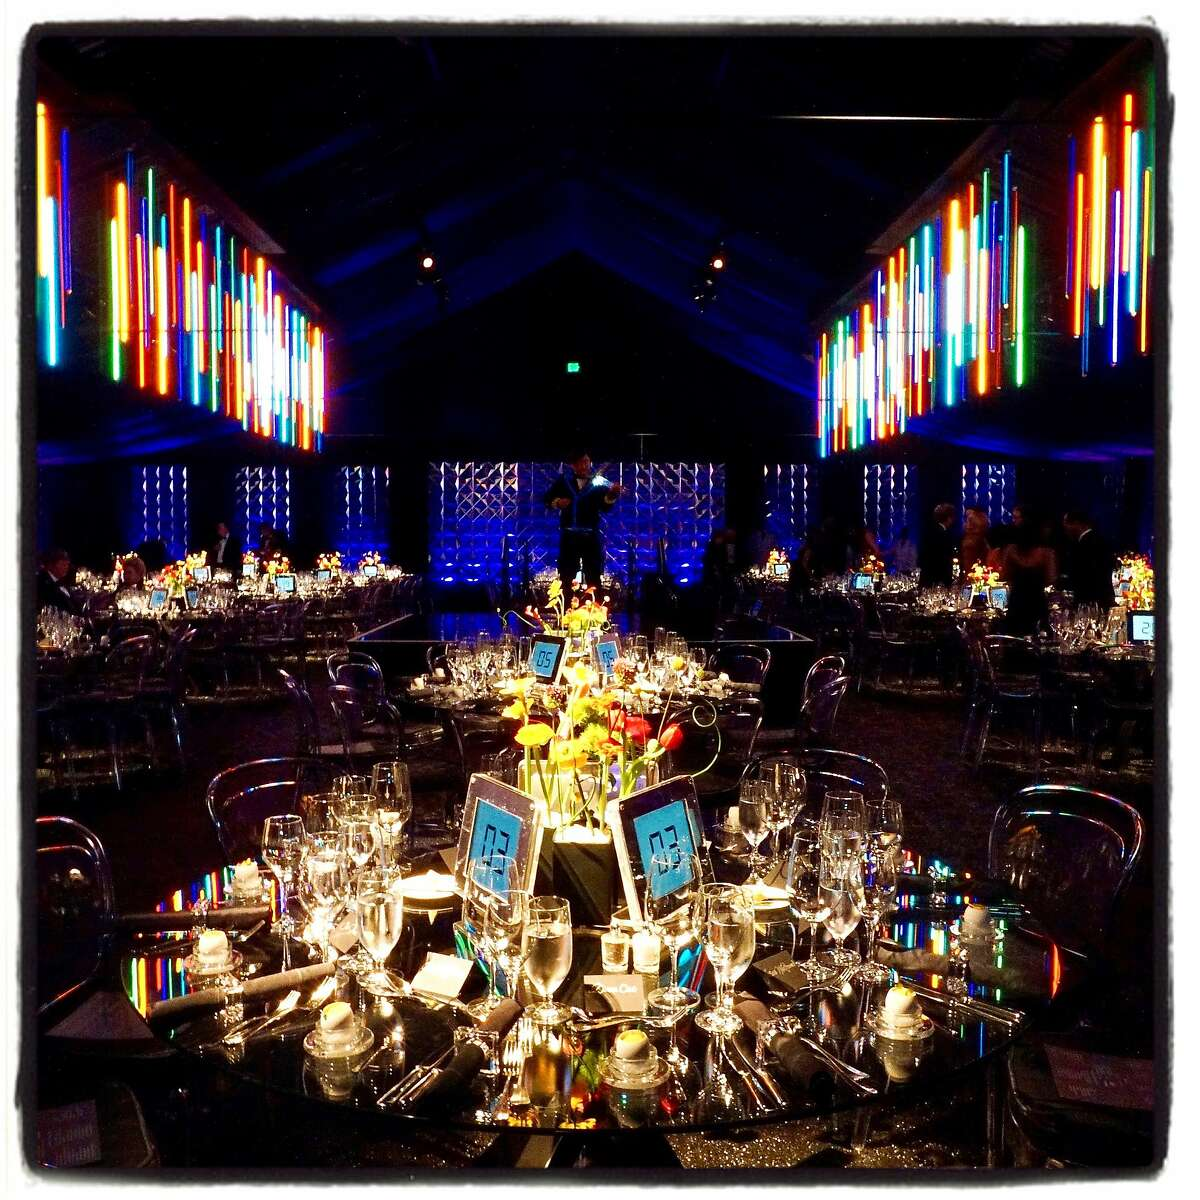 McCalls Catering and Got-Light created a dinner tent of digital delights at the Asian Art Museum gala. March 2, 2017.